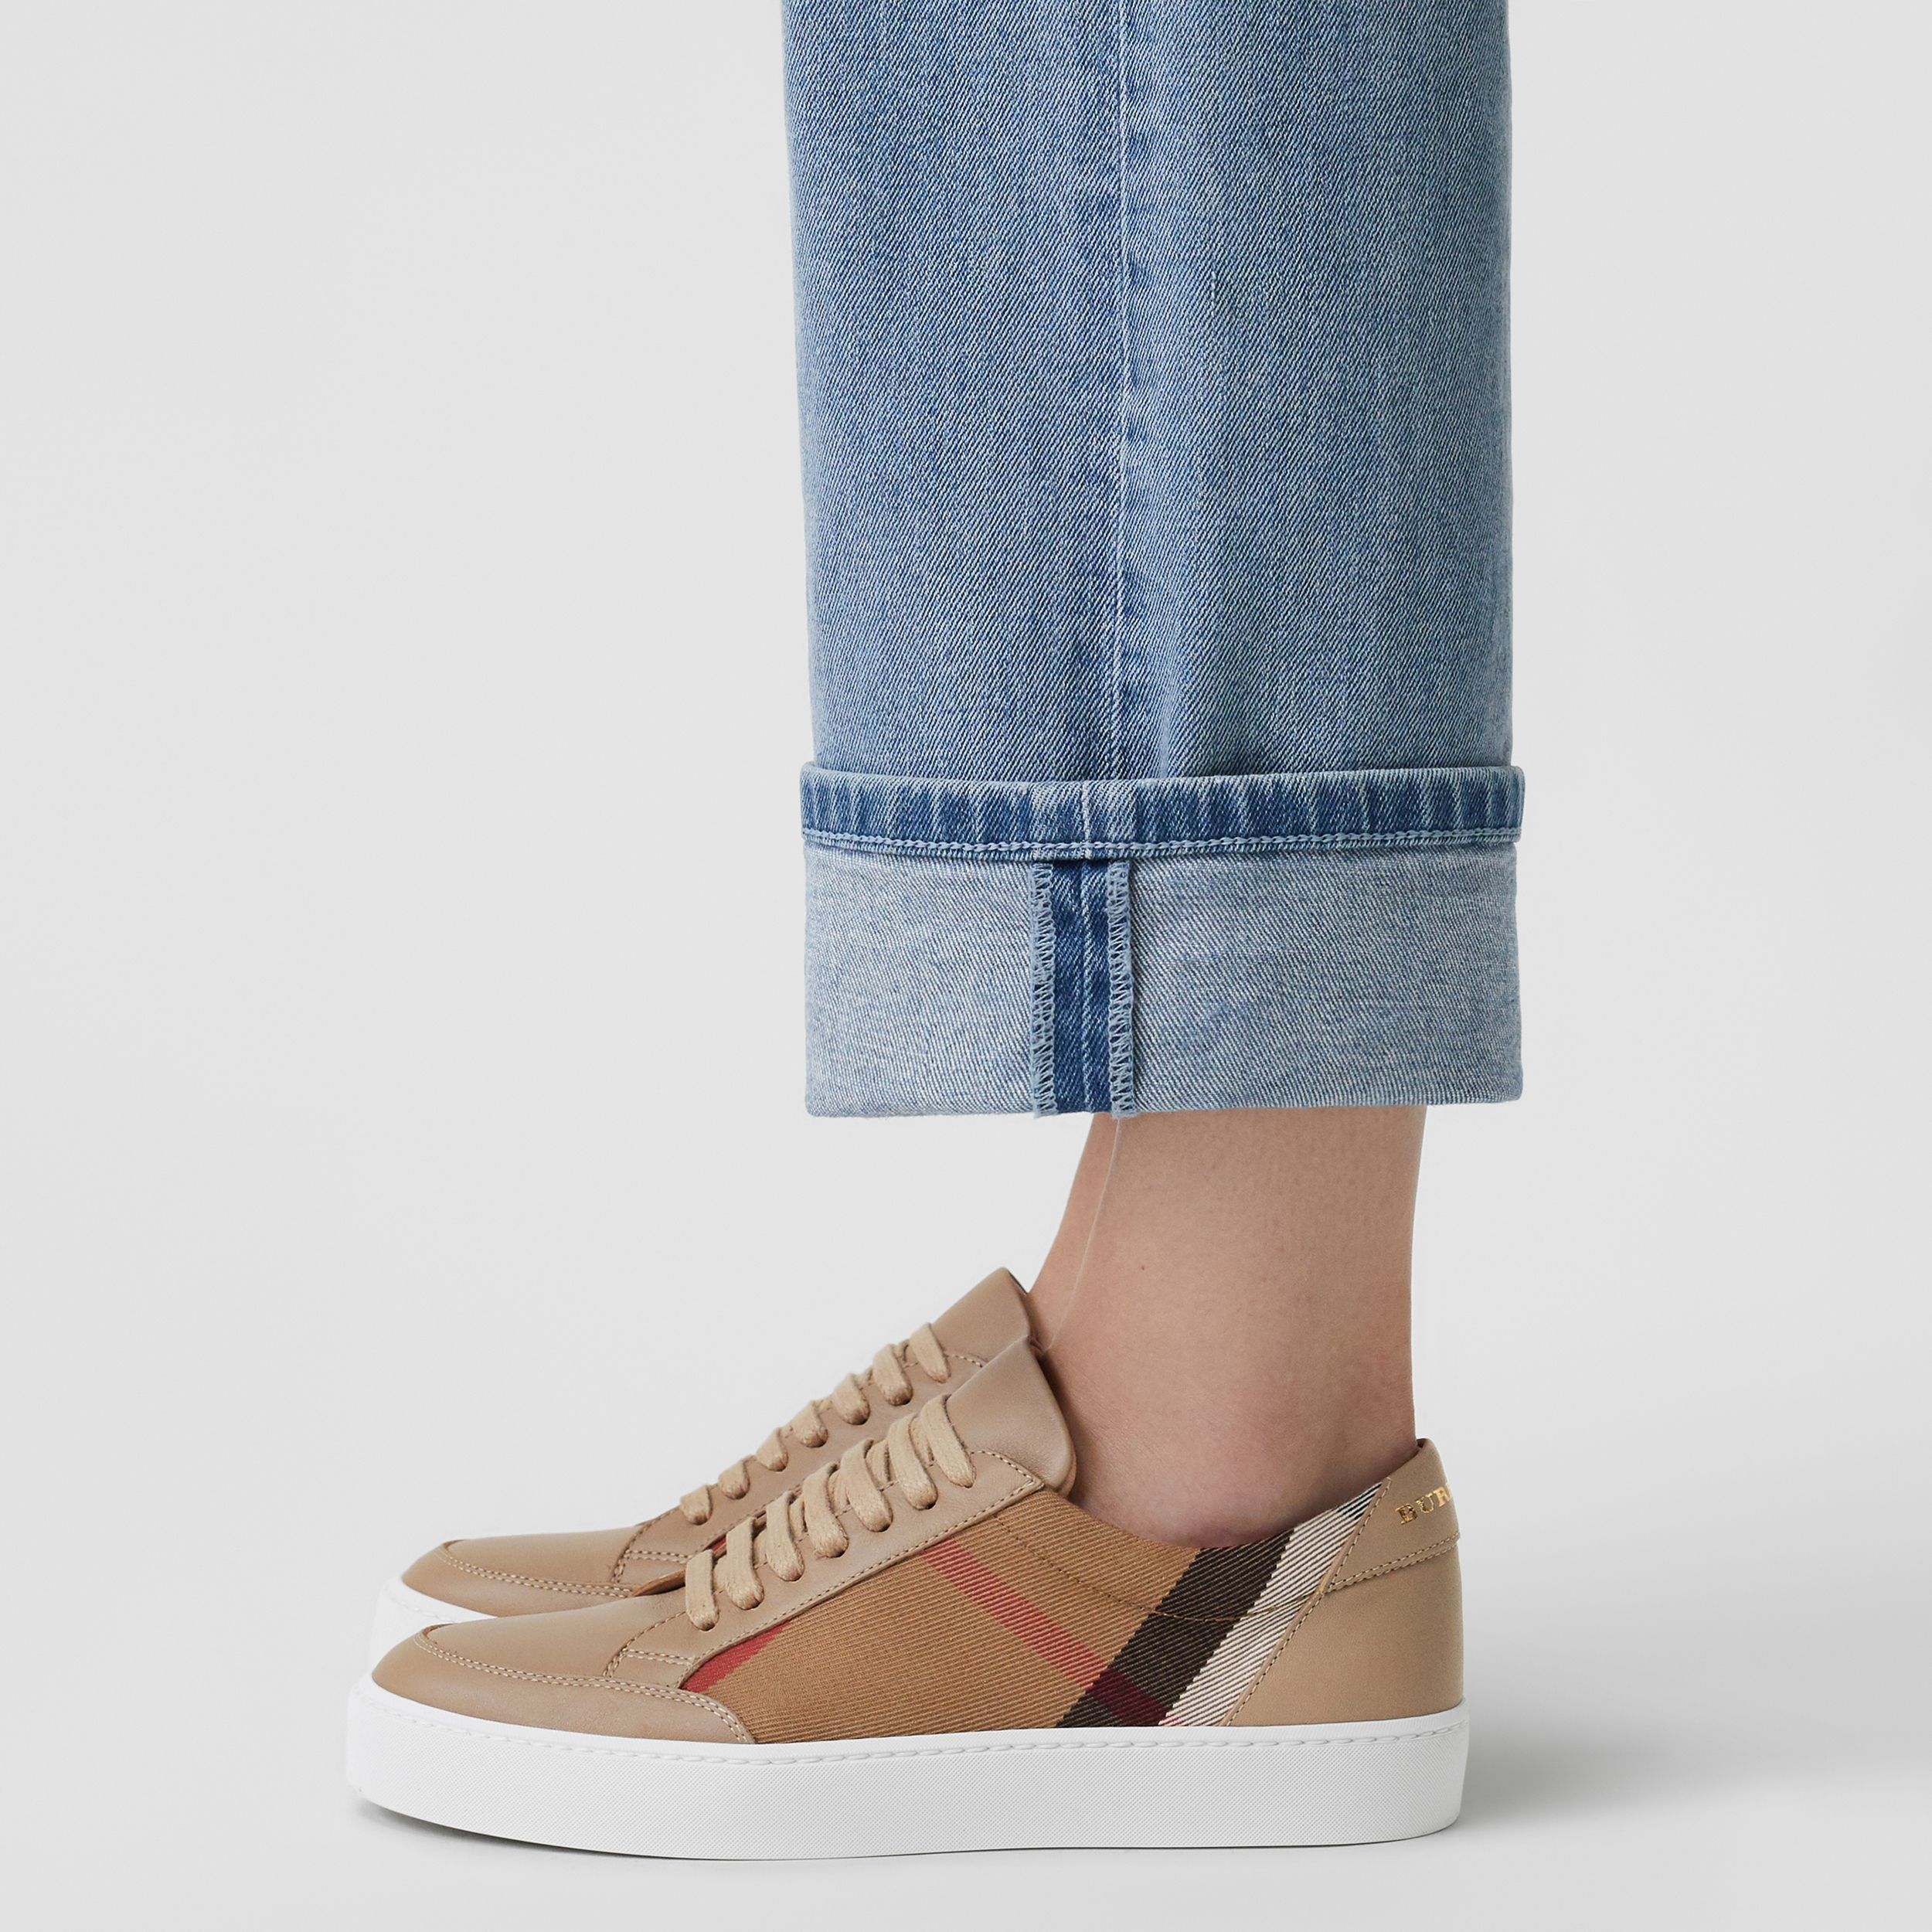 Check Detail Leather Sneakers in House Check/ Nude - Women | Burberry United Kingdom - 3